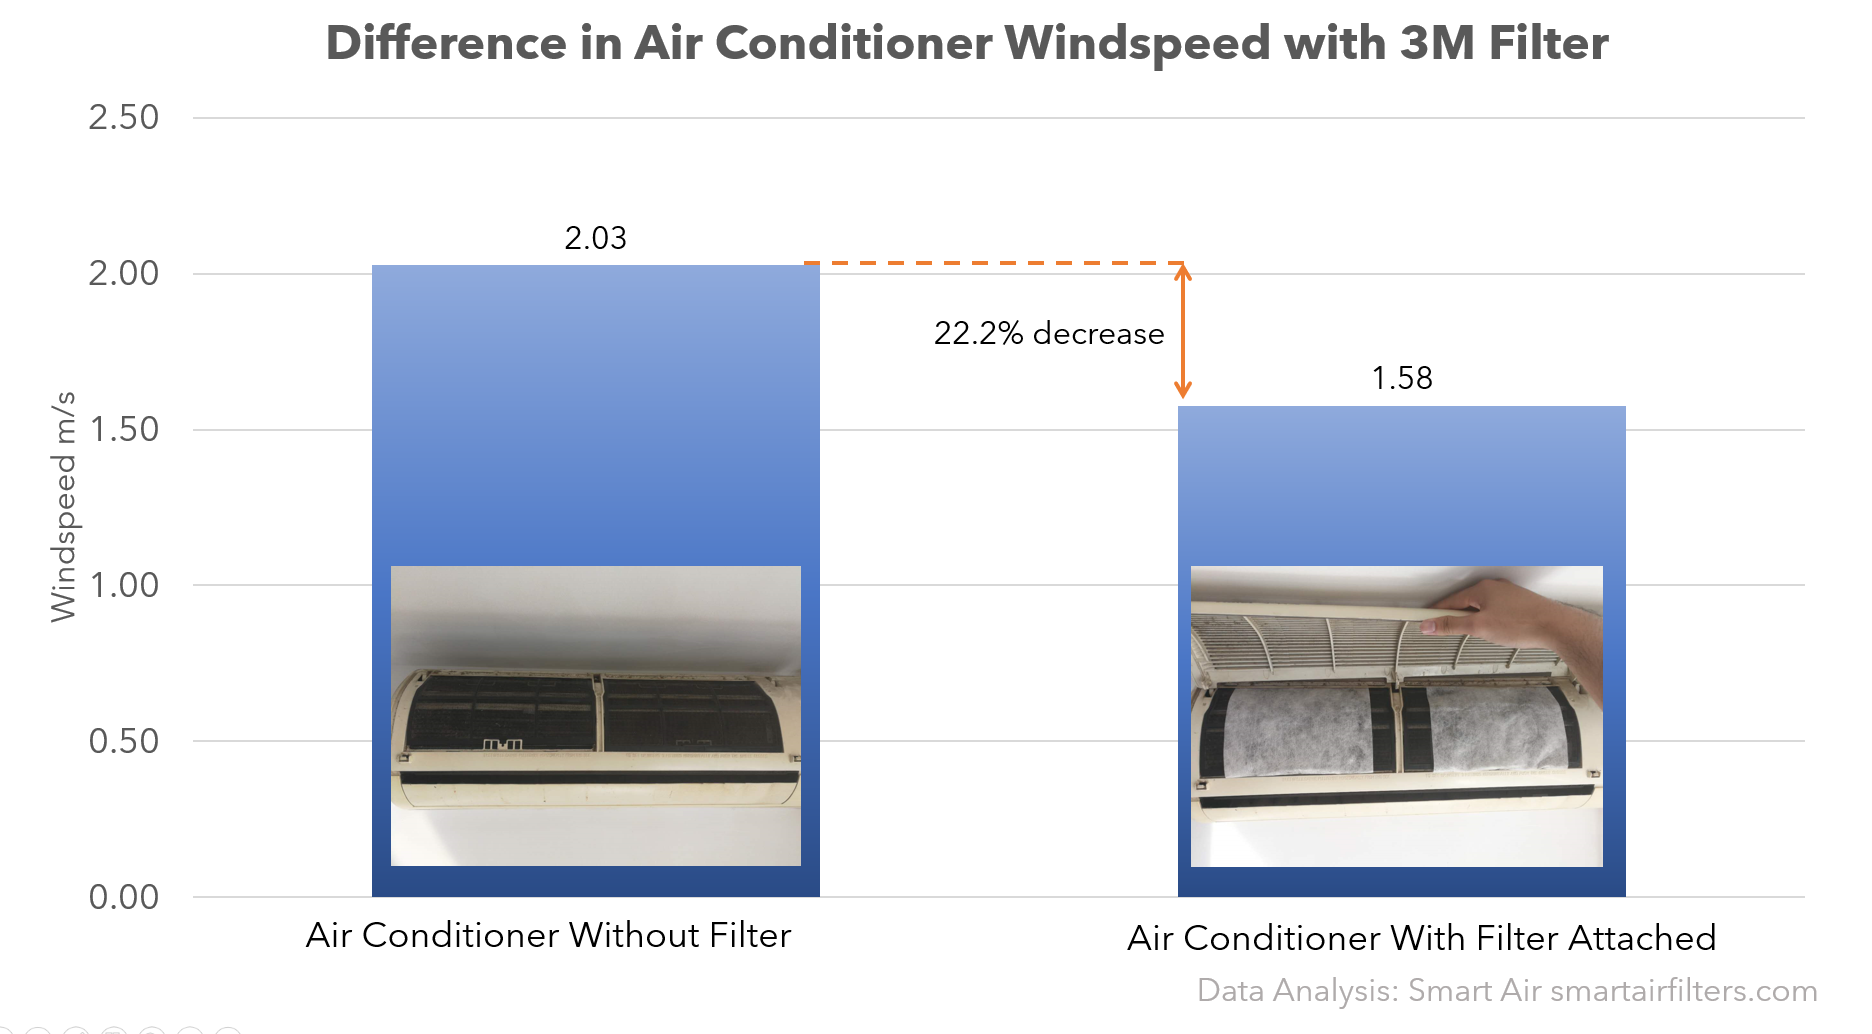 3M air conditioner filter winds peed with filter